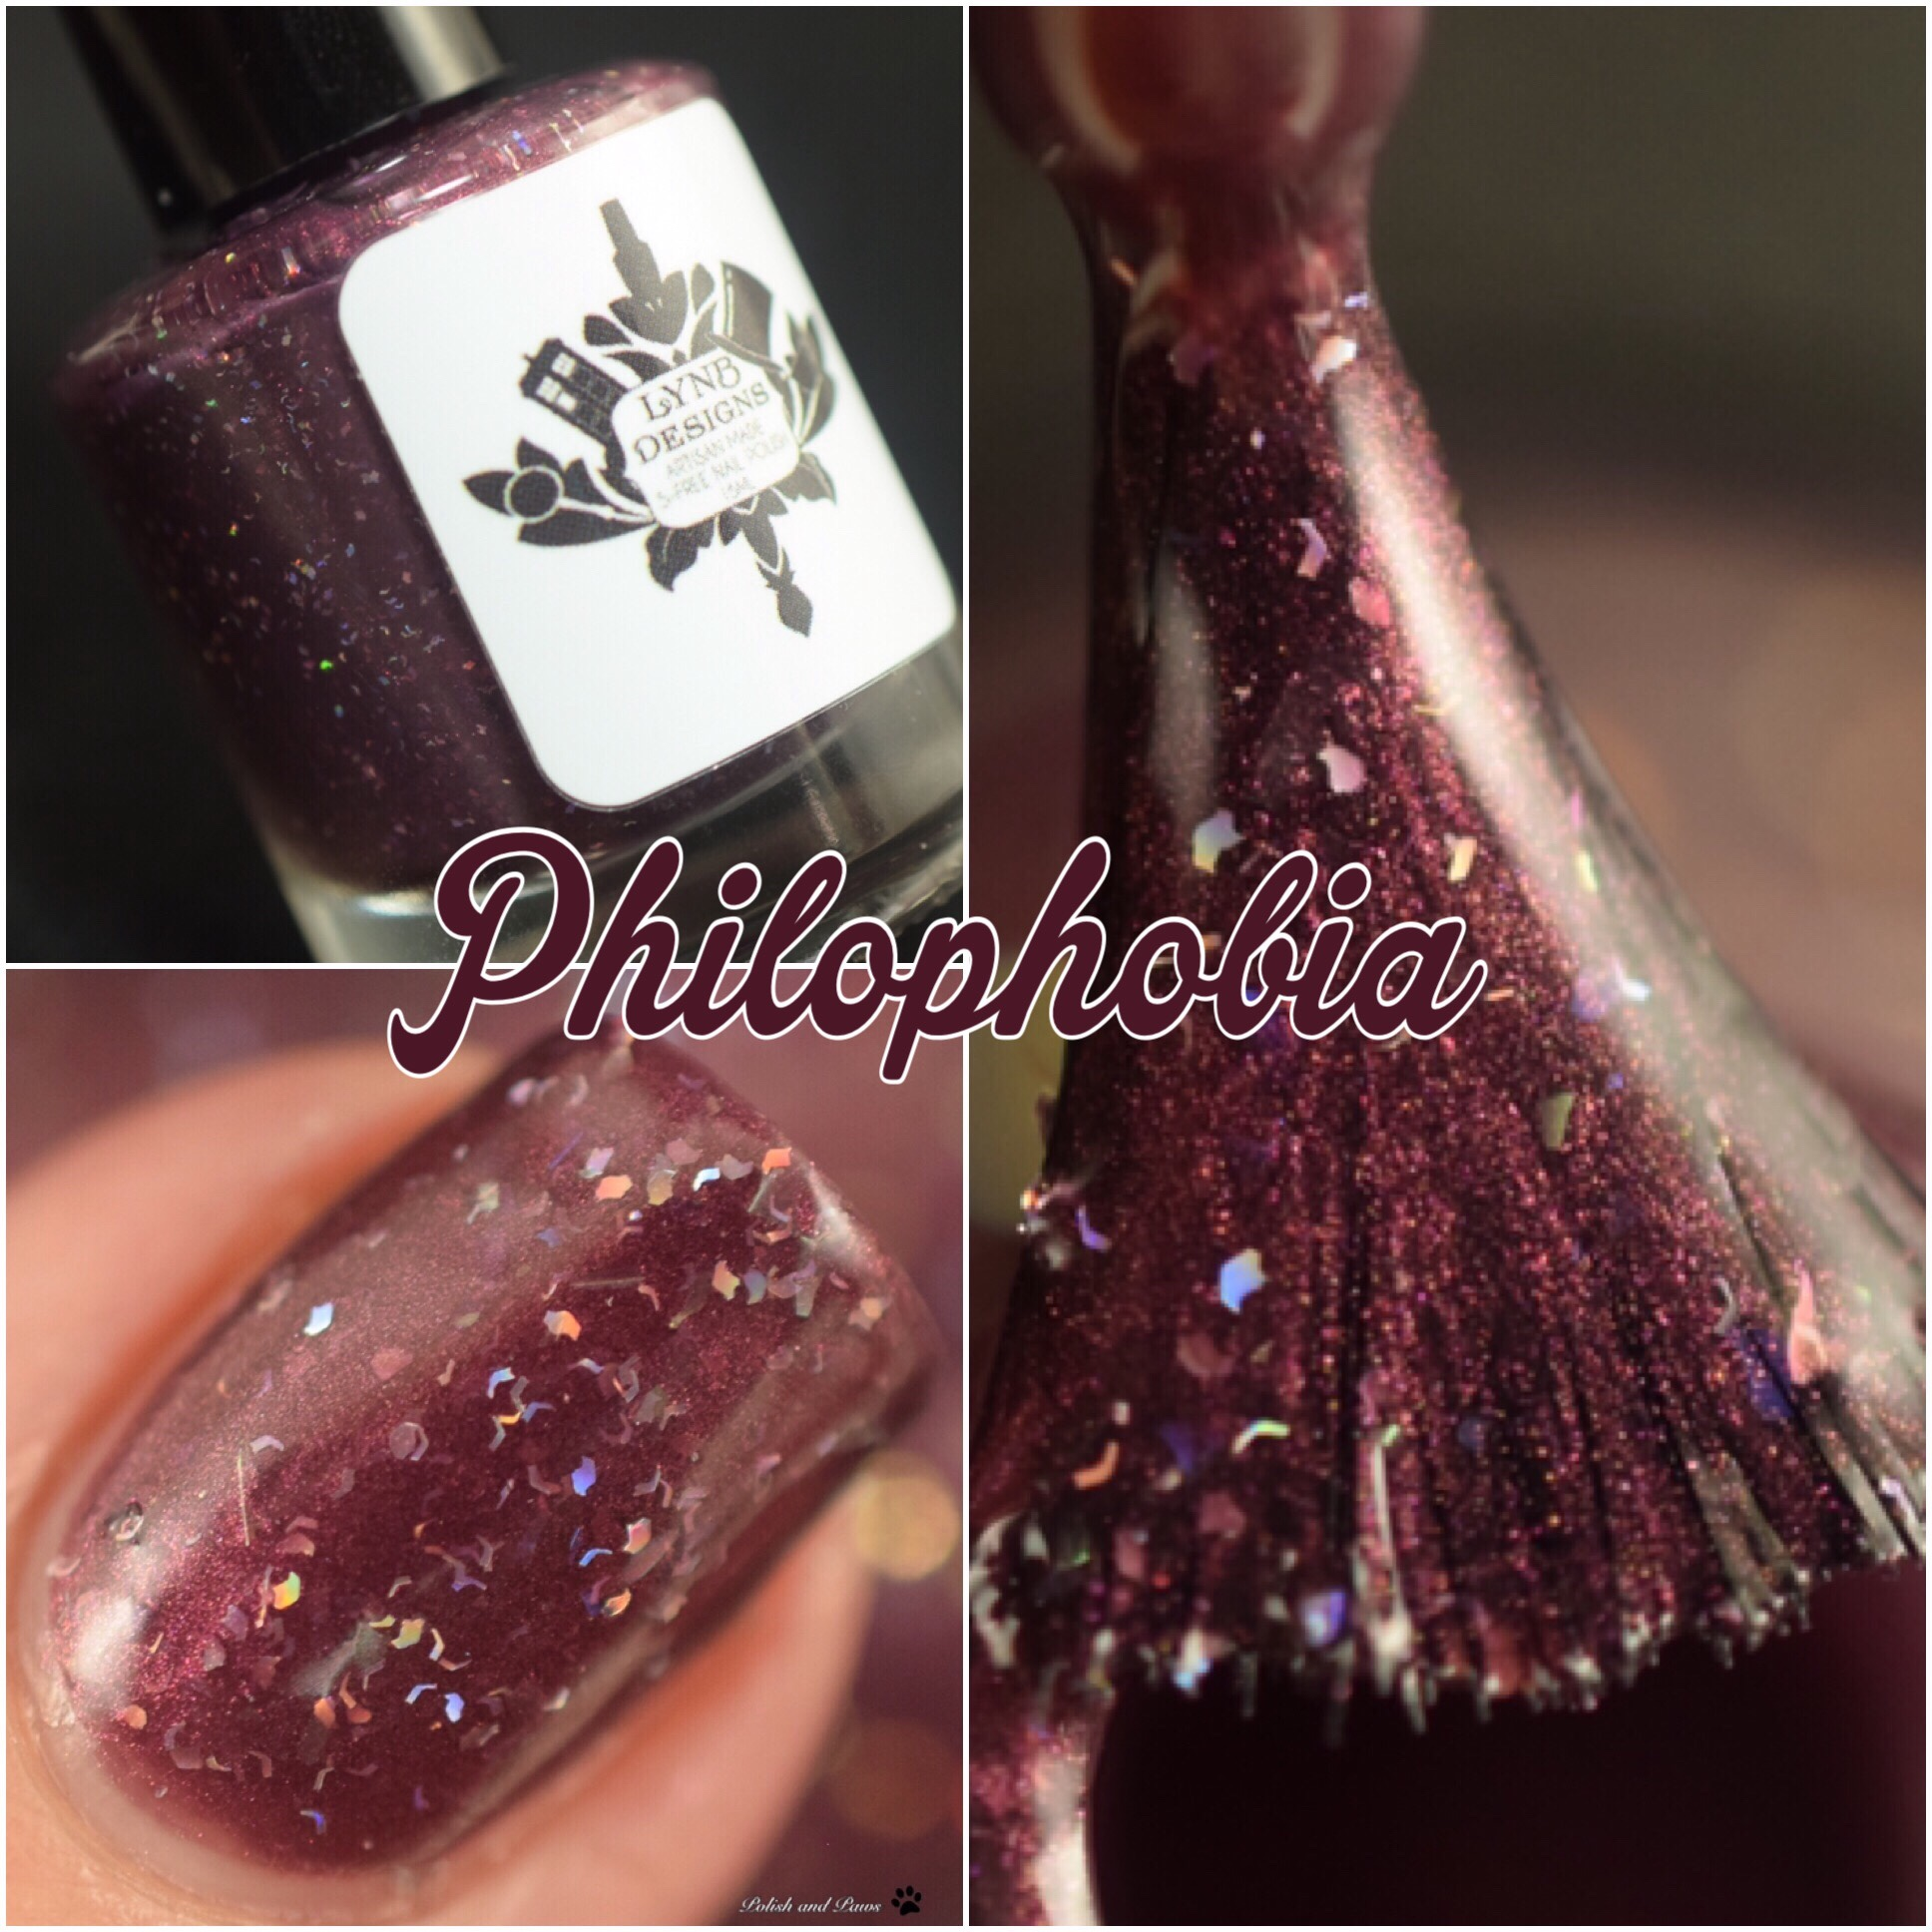 LynB Designs Philophobia